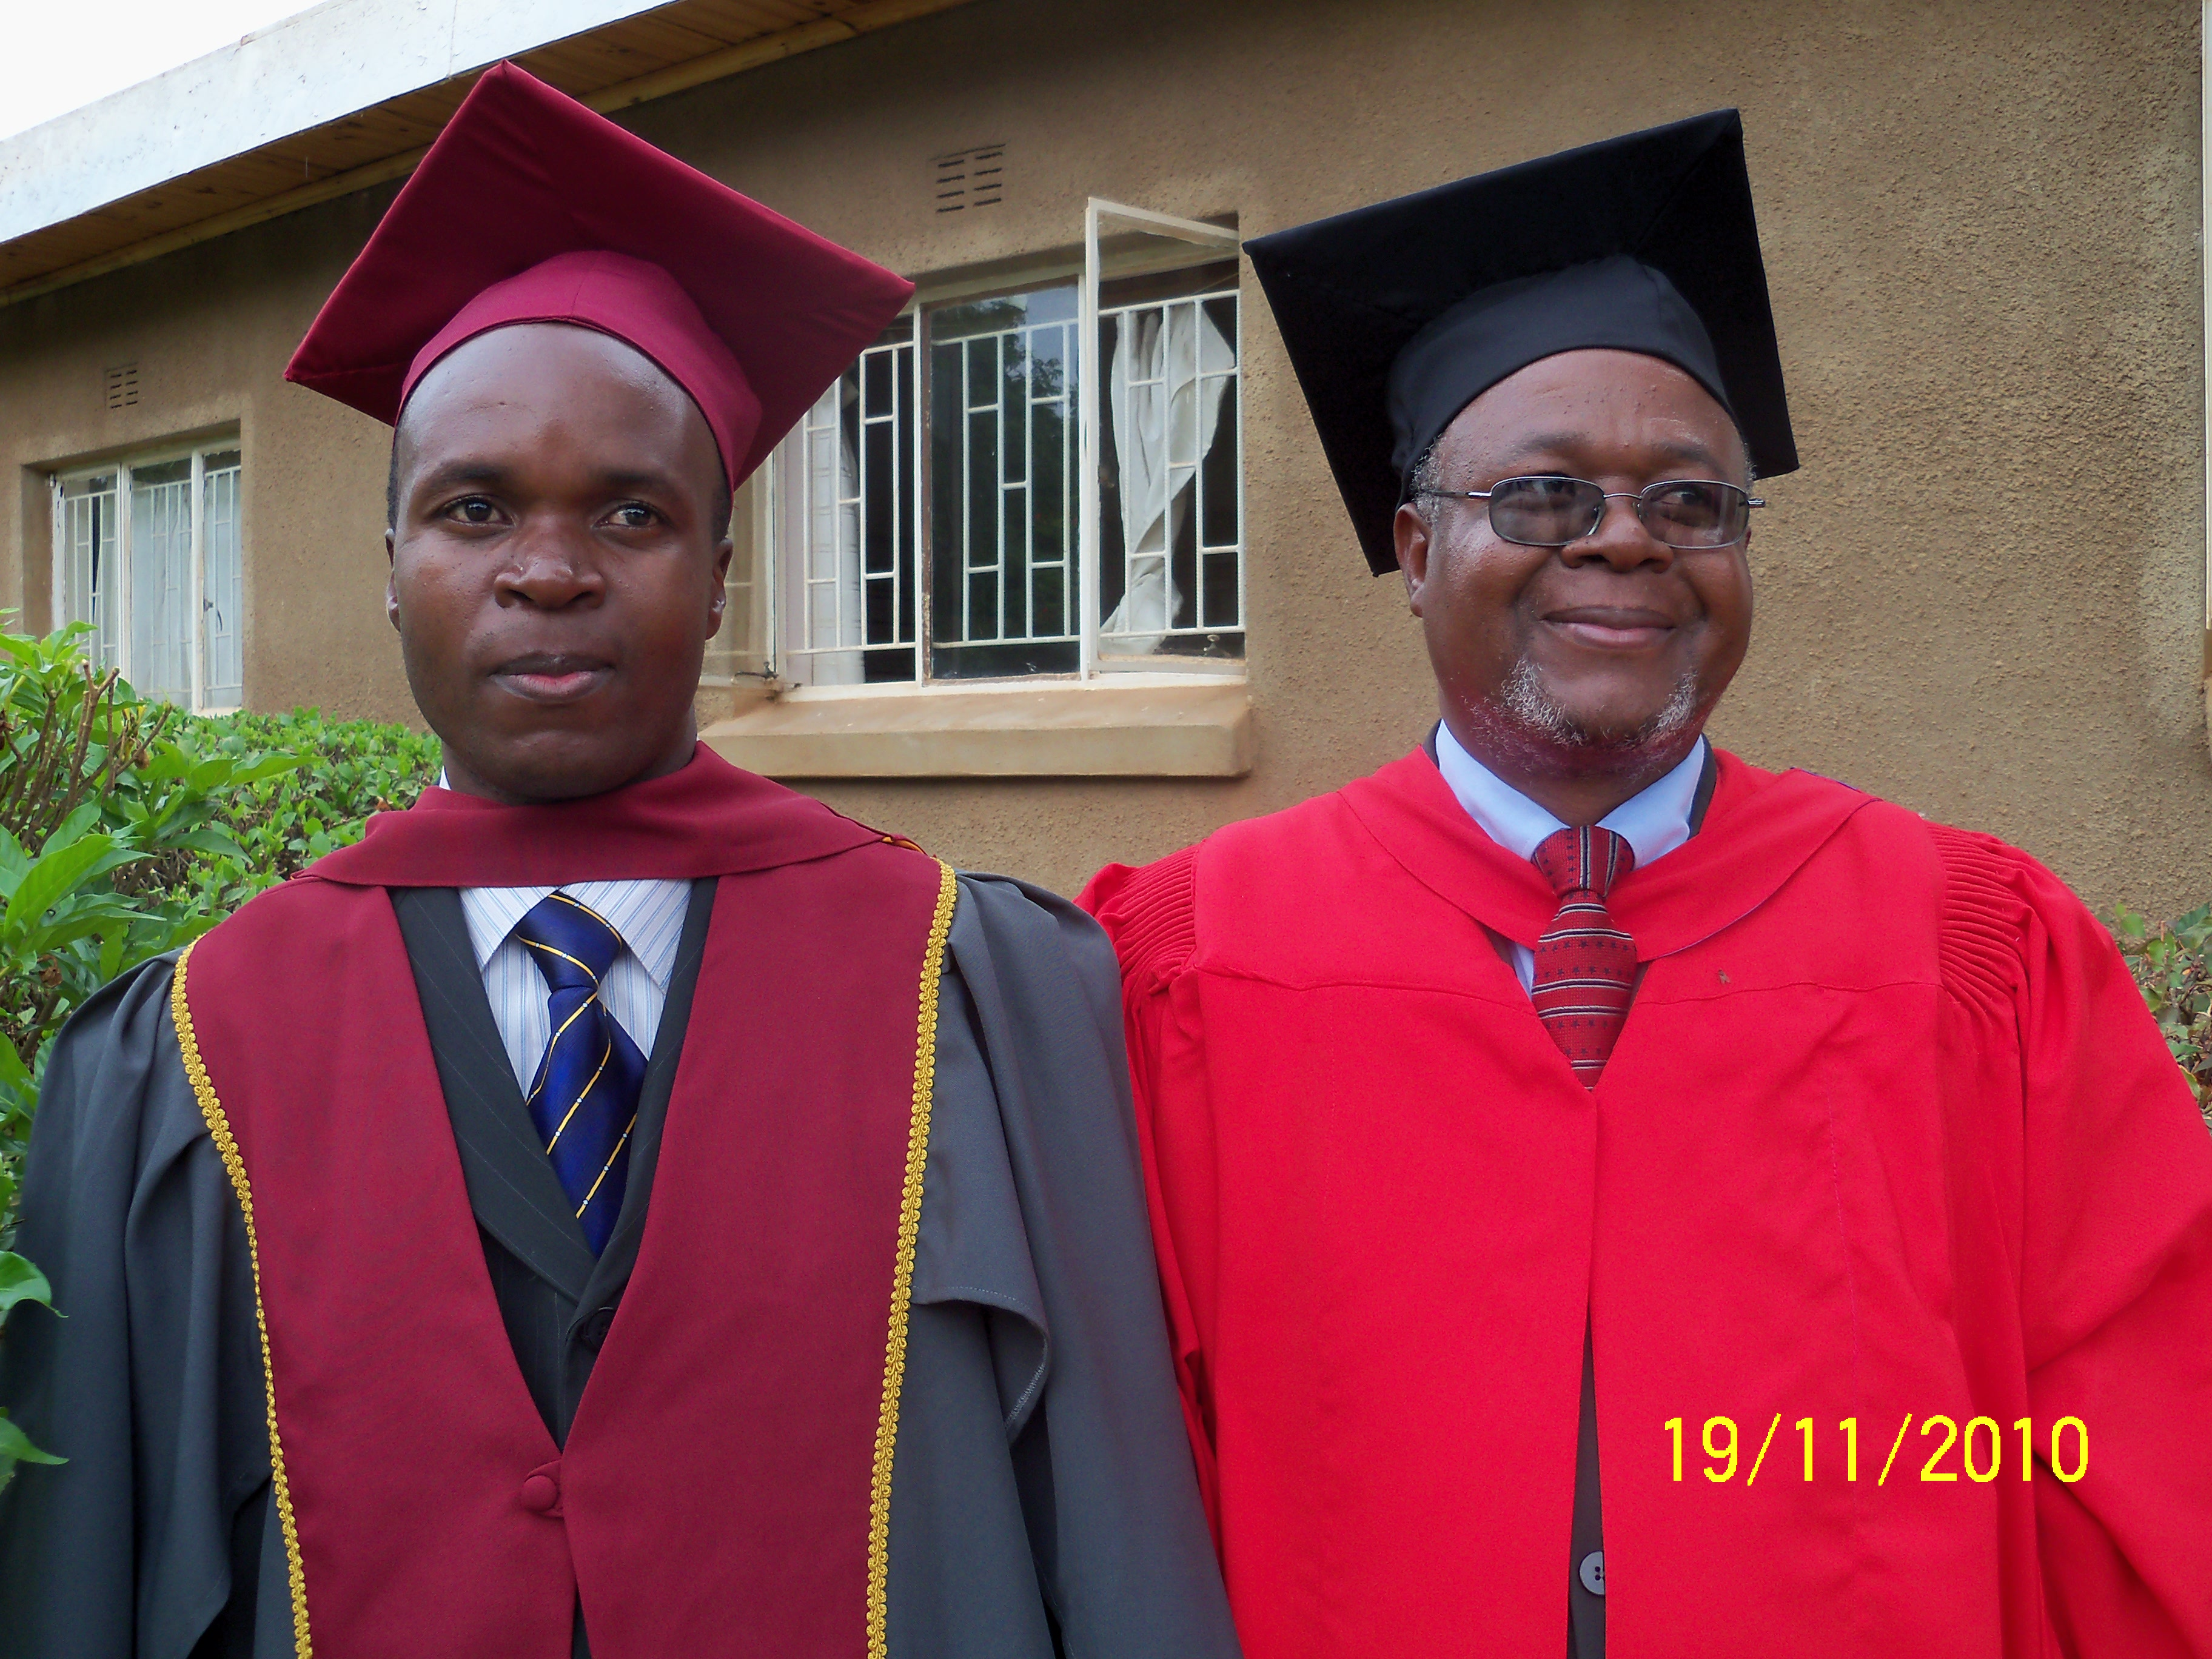 Dr. Chilenje with young brother Lazarus, who was raised by Dr. Chilenje and followed in his footsteps. Photo is from Lazarus Chilenje's graduation from Justo Mwale Bachelor of Theology program in 2010.